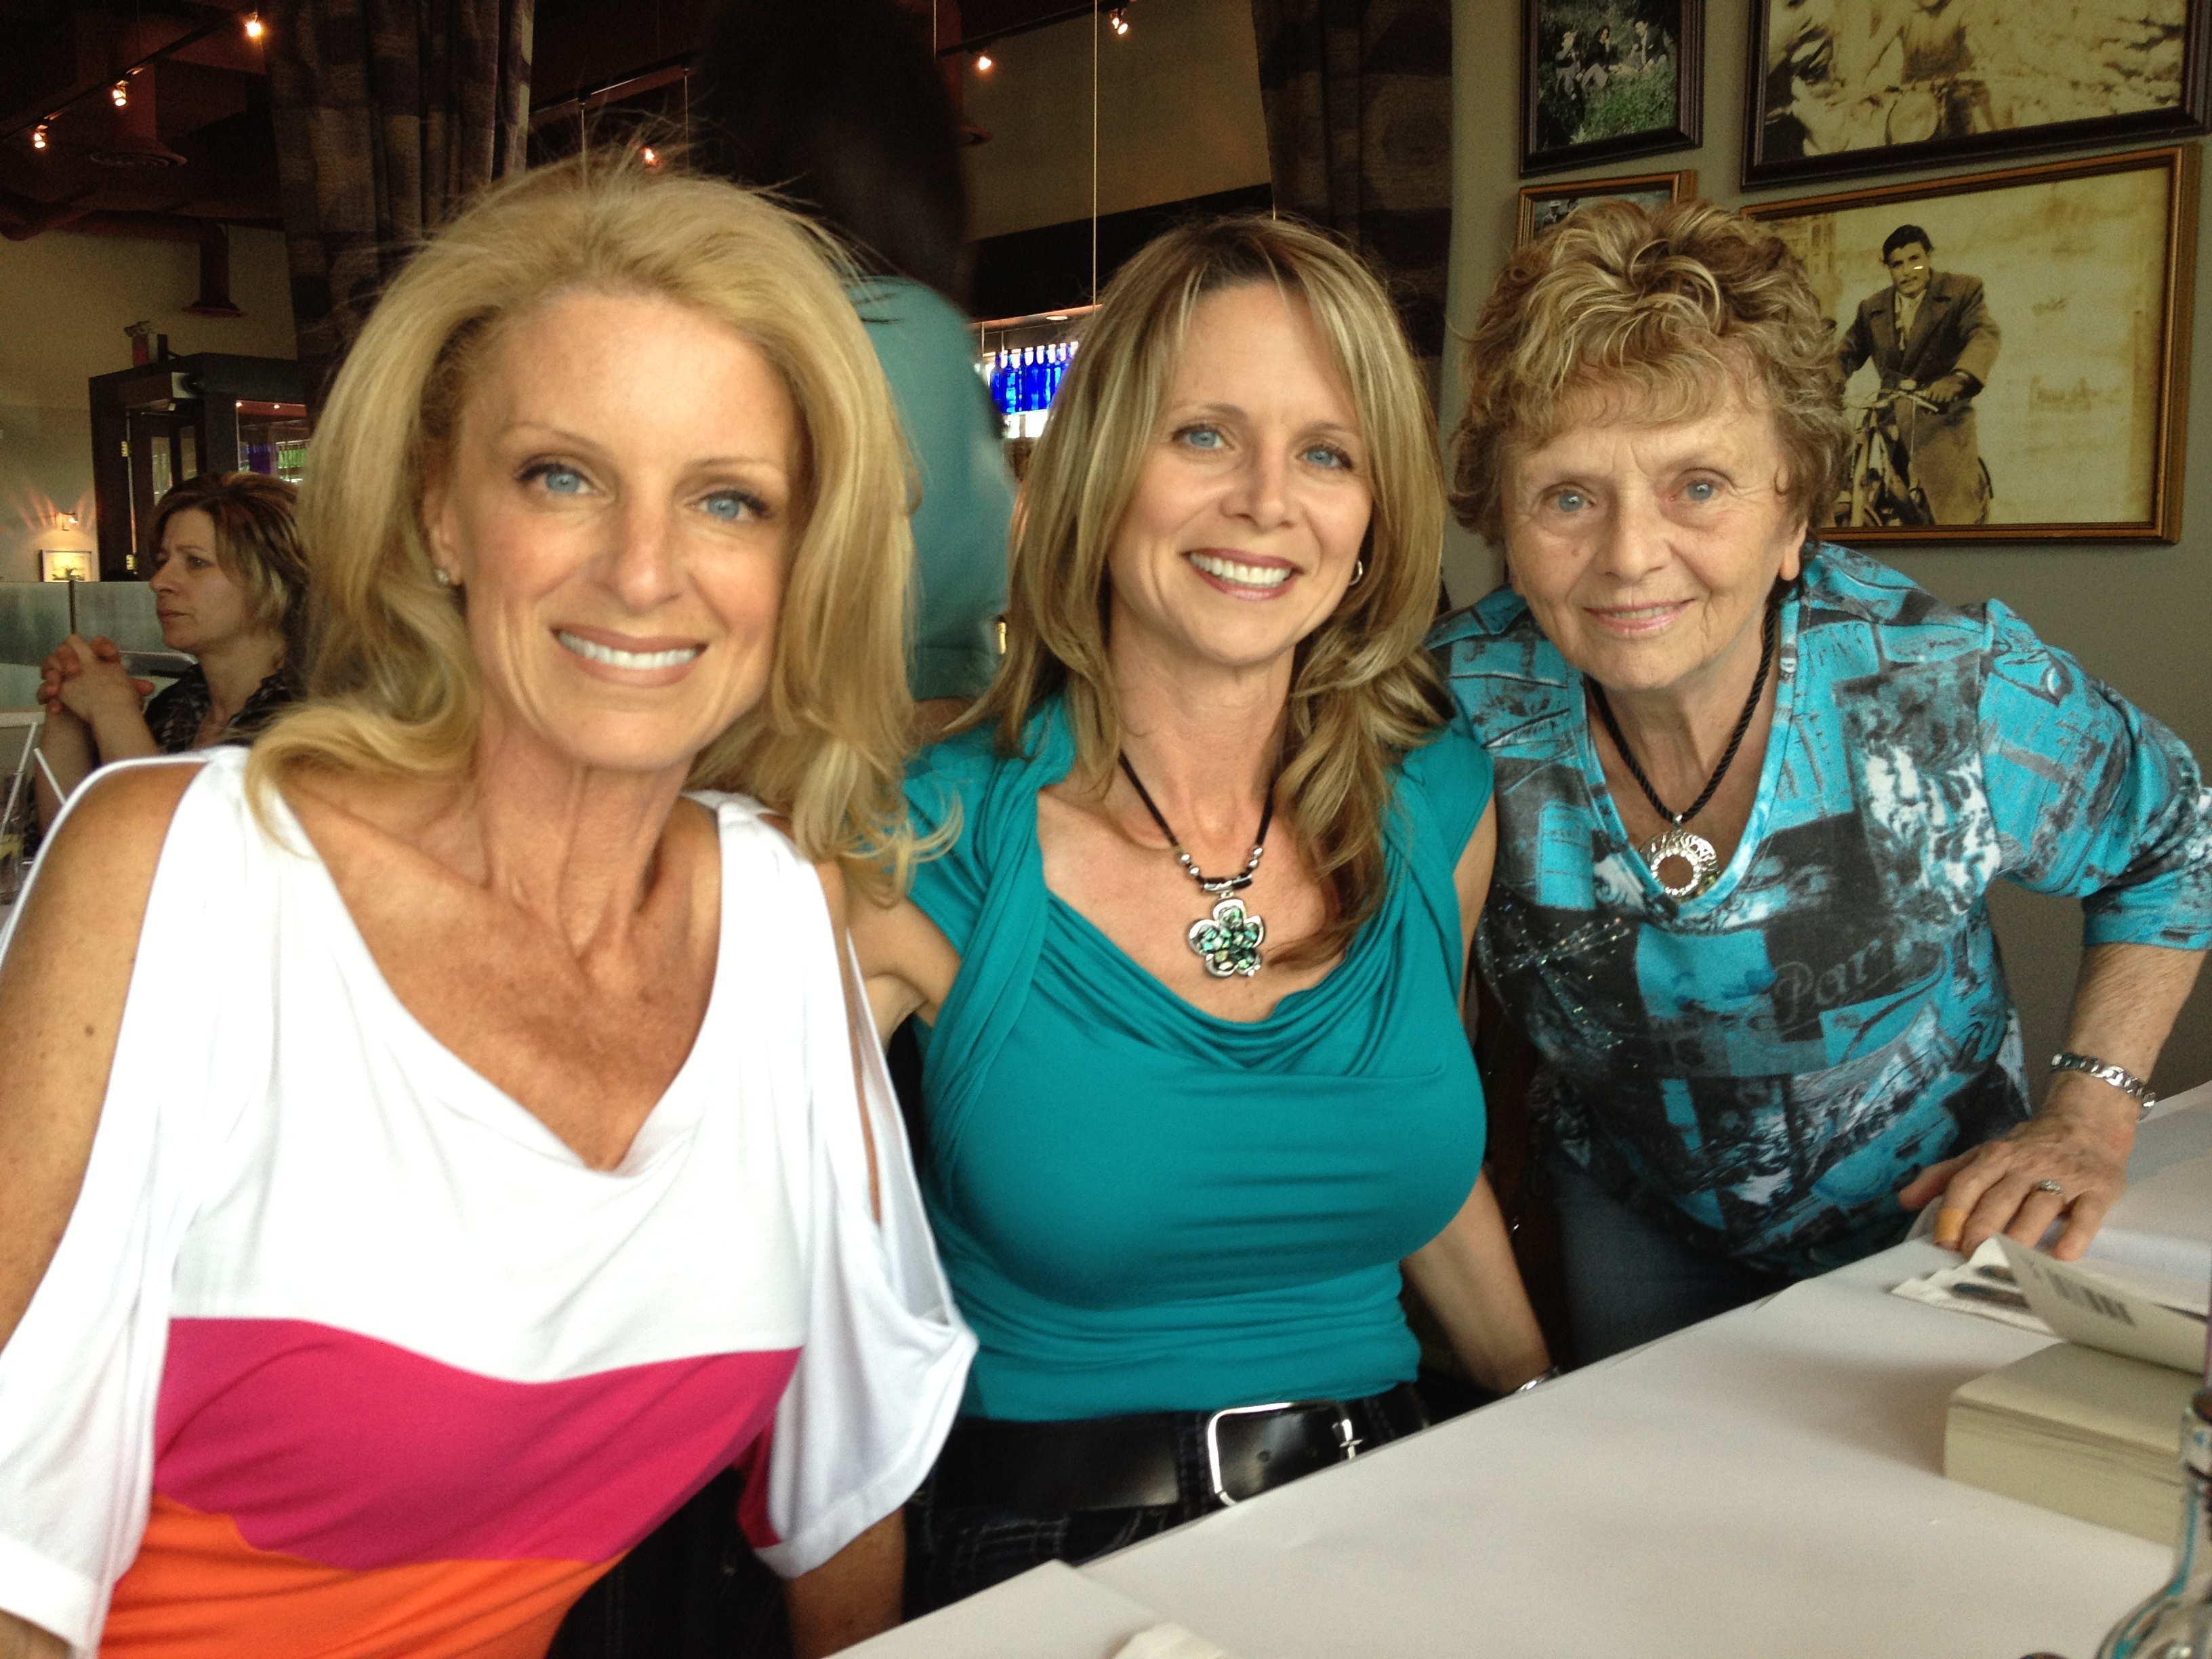 Kelly, Shannon and Colleen Childs